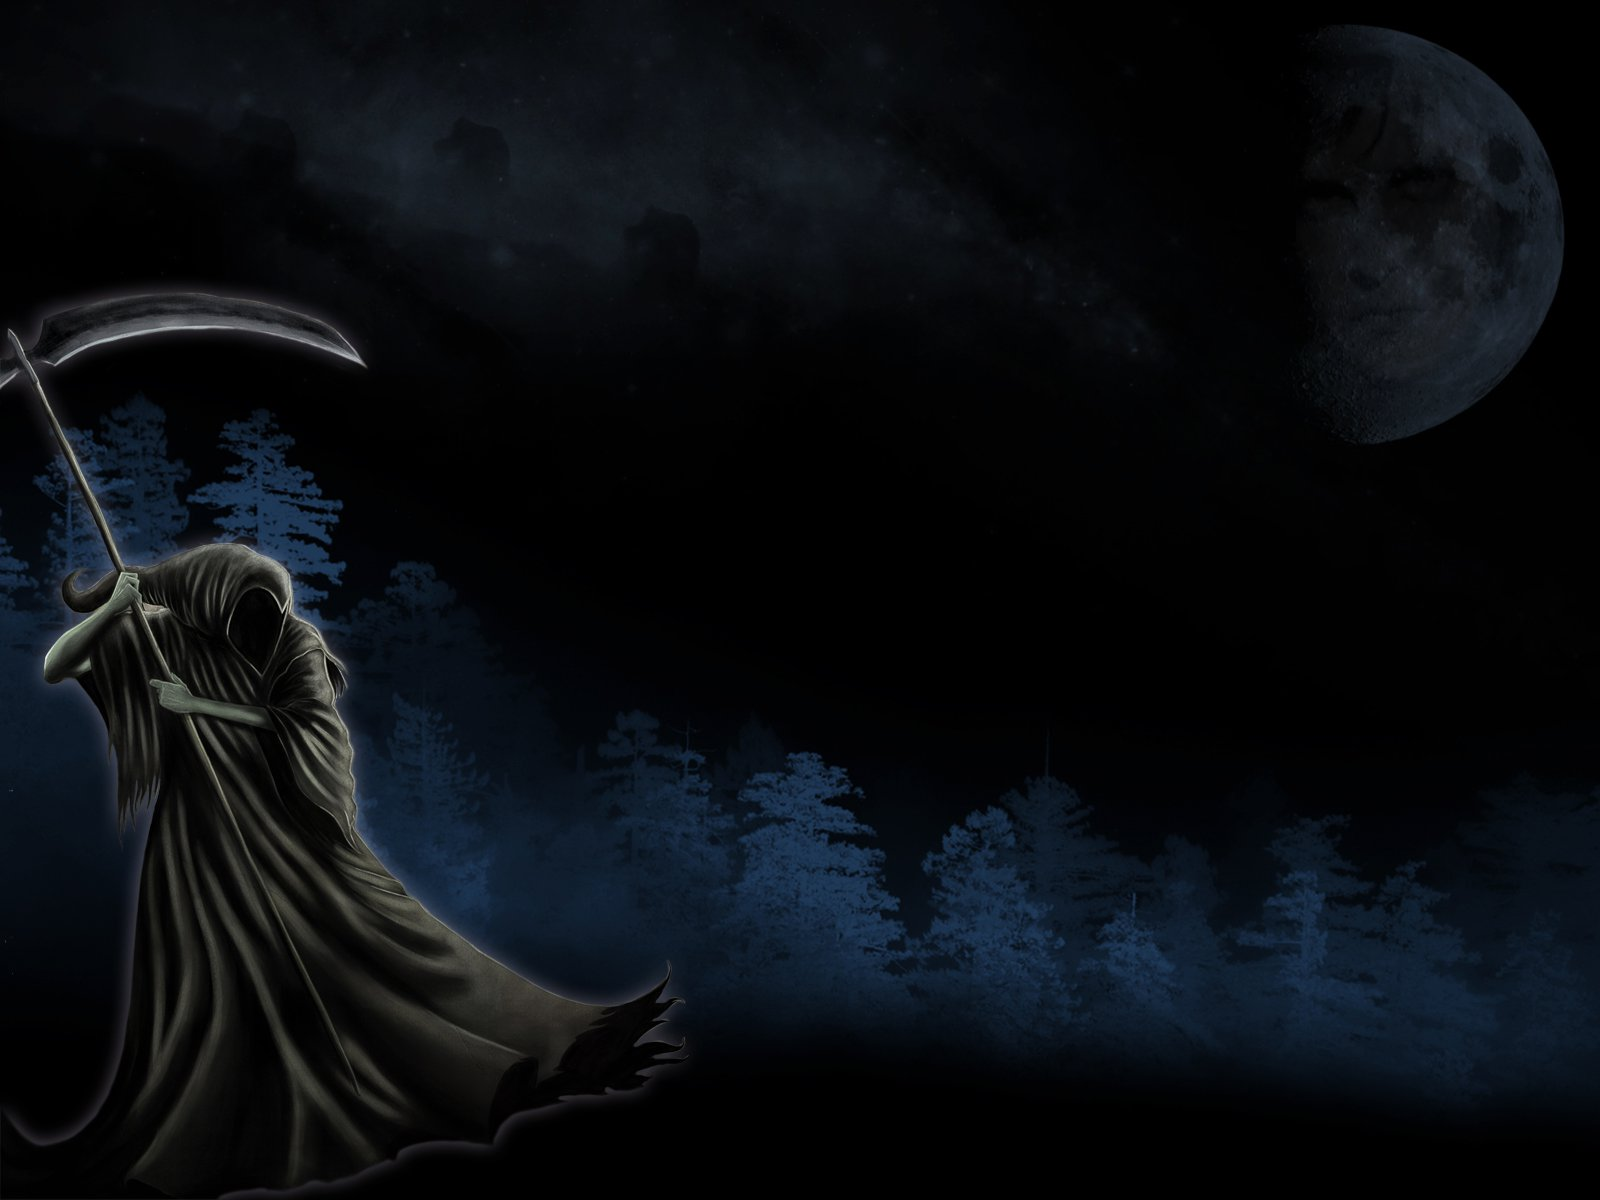 Free Download Grim Reaper Wallpaper Background 1600x1200 For